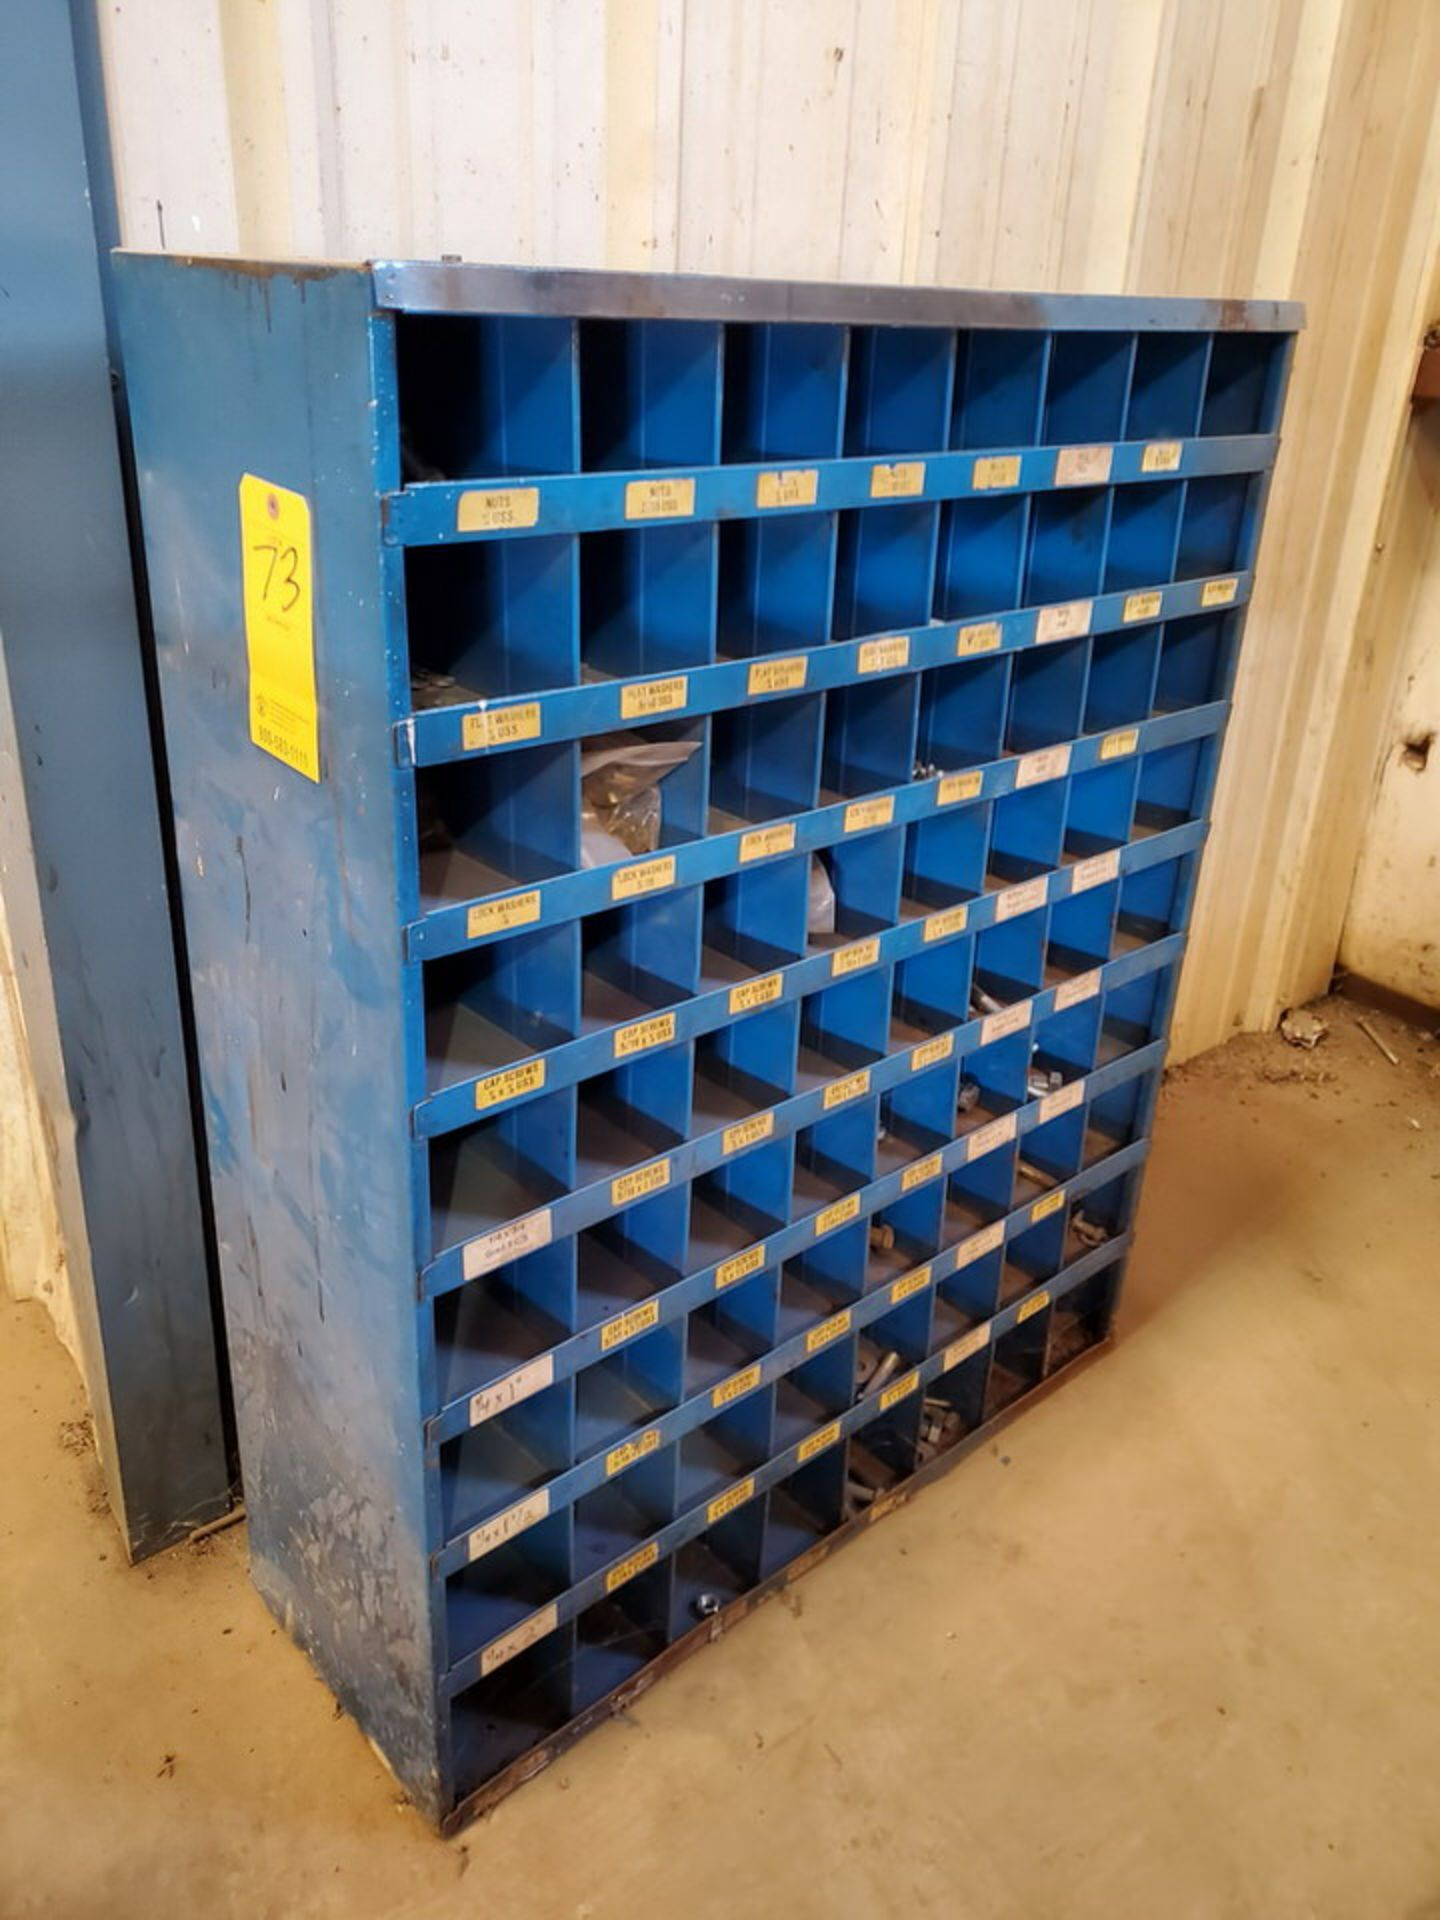 """(2) Parts Bins To Include But Not Limited To: Nuts, Bolts, Washers, etc. Size Range: 1/4""""-4"""""""